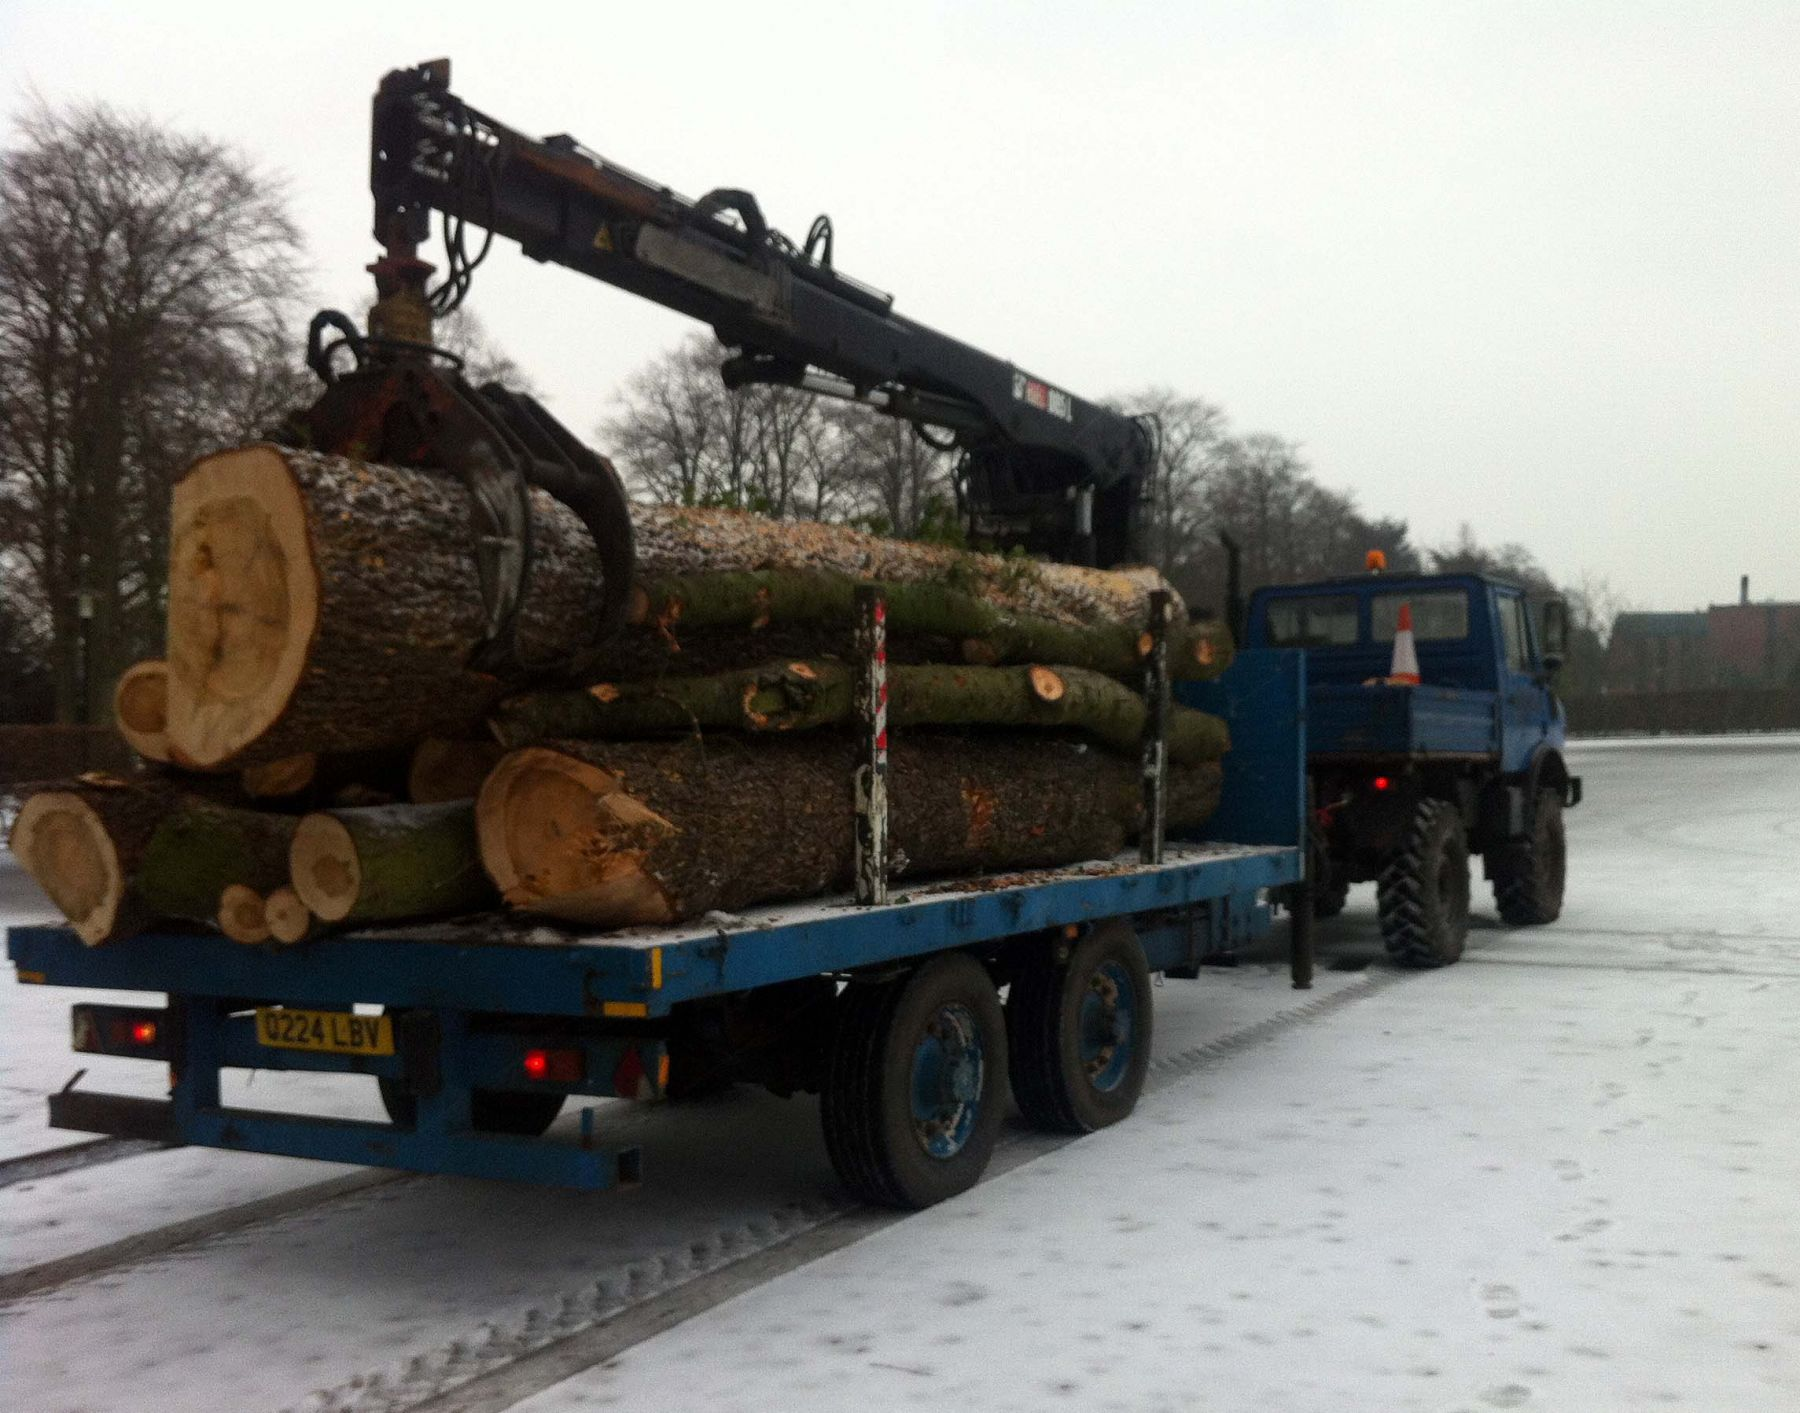 Tree Work with Crane & Trailer Mog